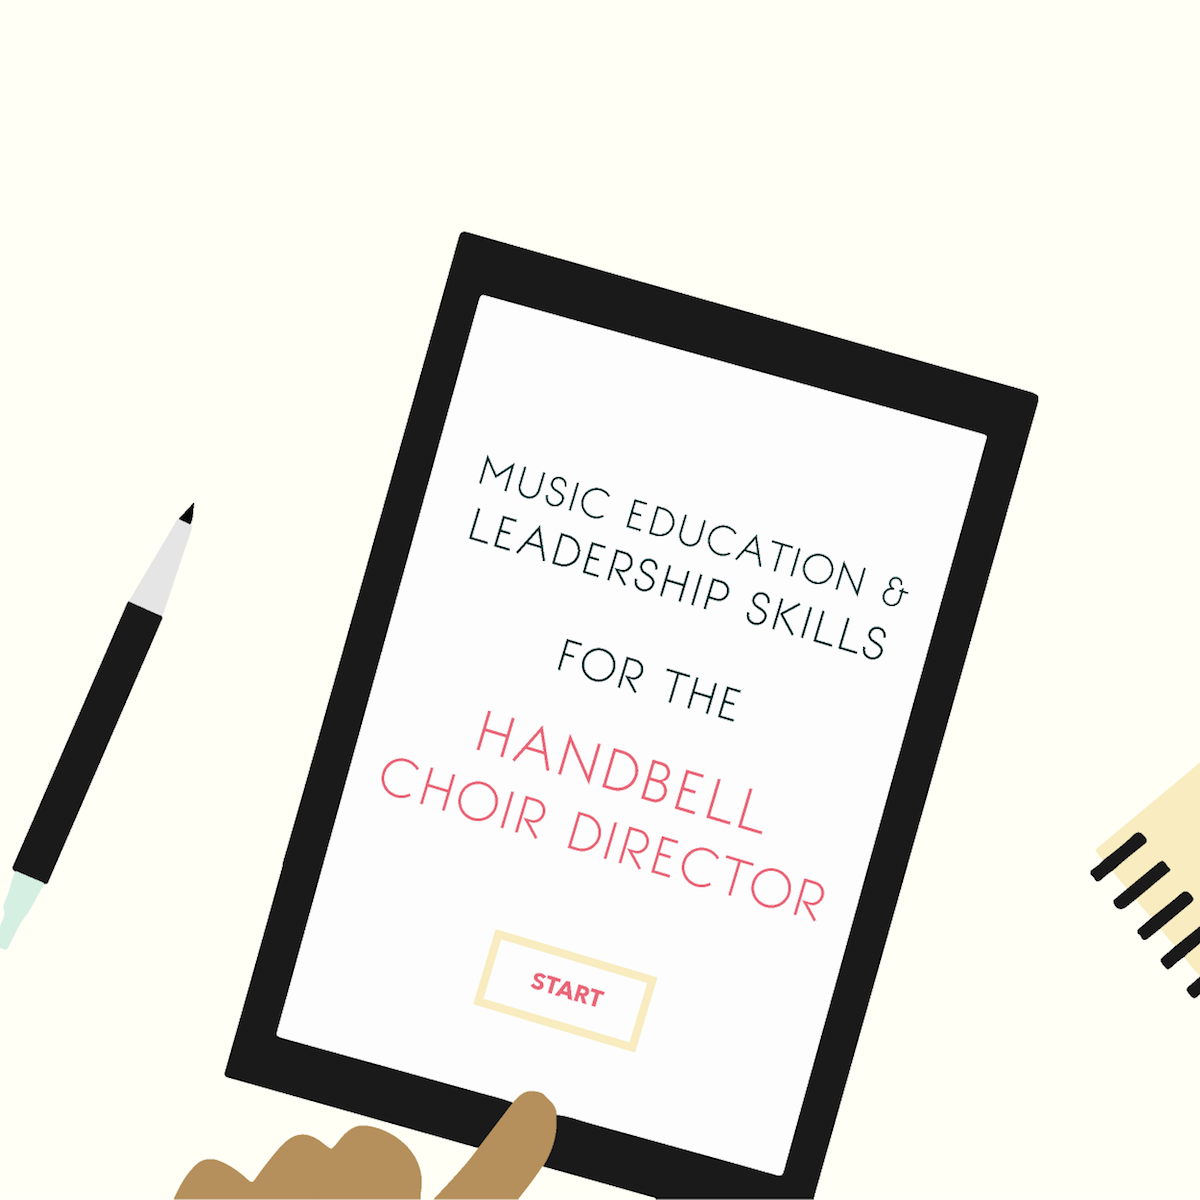 Music Education & Leadership Skills for the Handbell Choir Director - an online training course.png